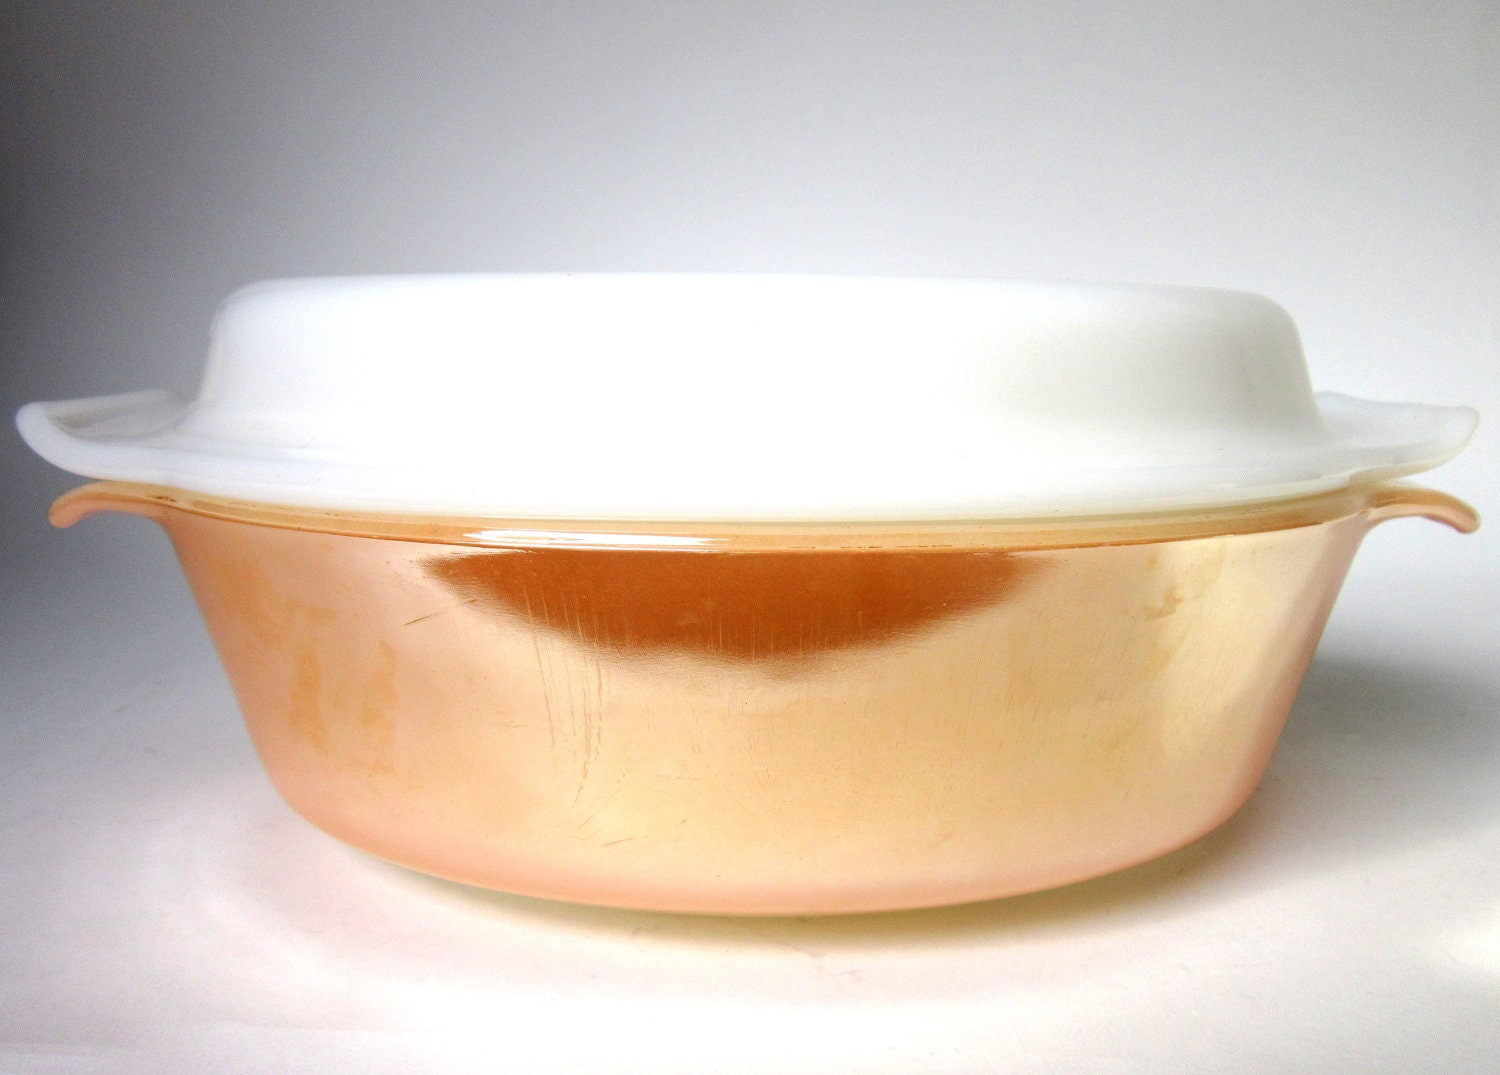 Vintage 1950s Fire King Peach Lustre Covered Casserole Dish, Anchor Hocking Retro Serving Dish - CedarRunVintage